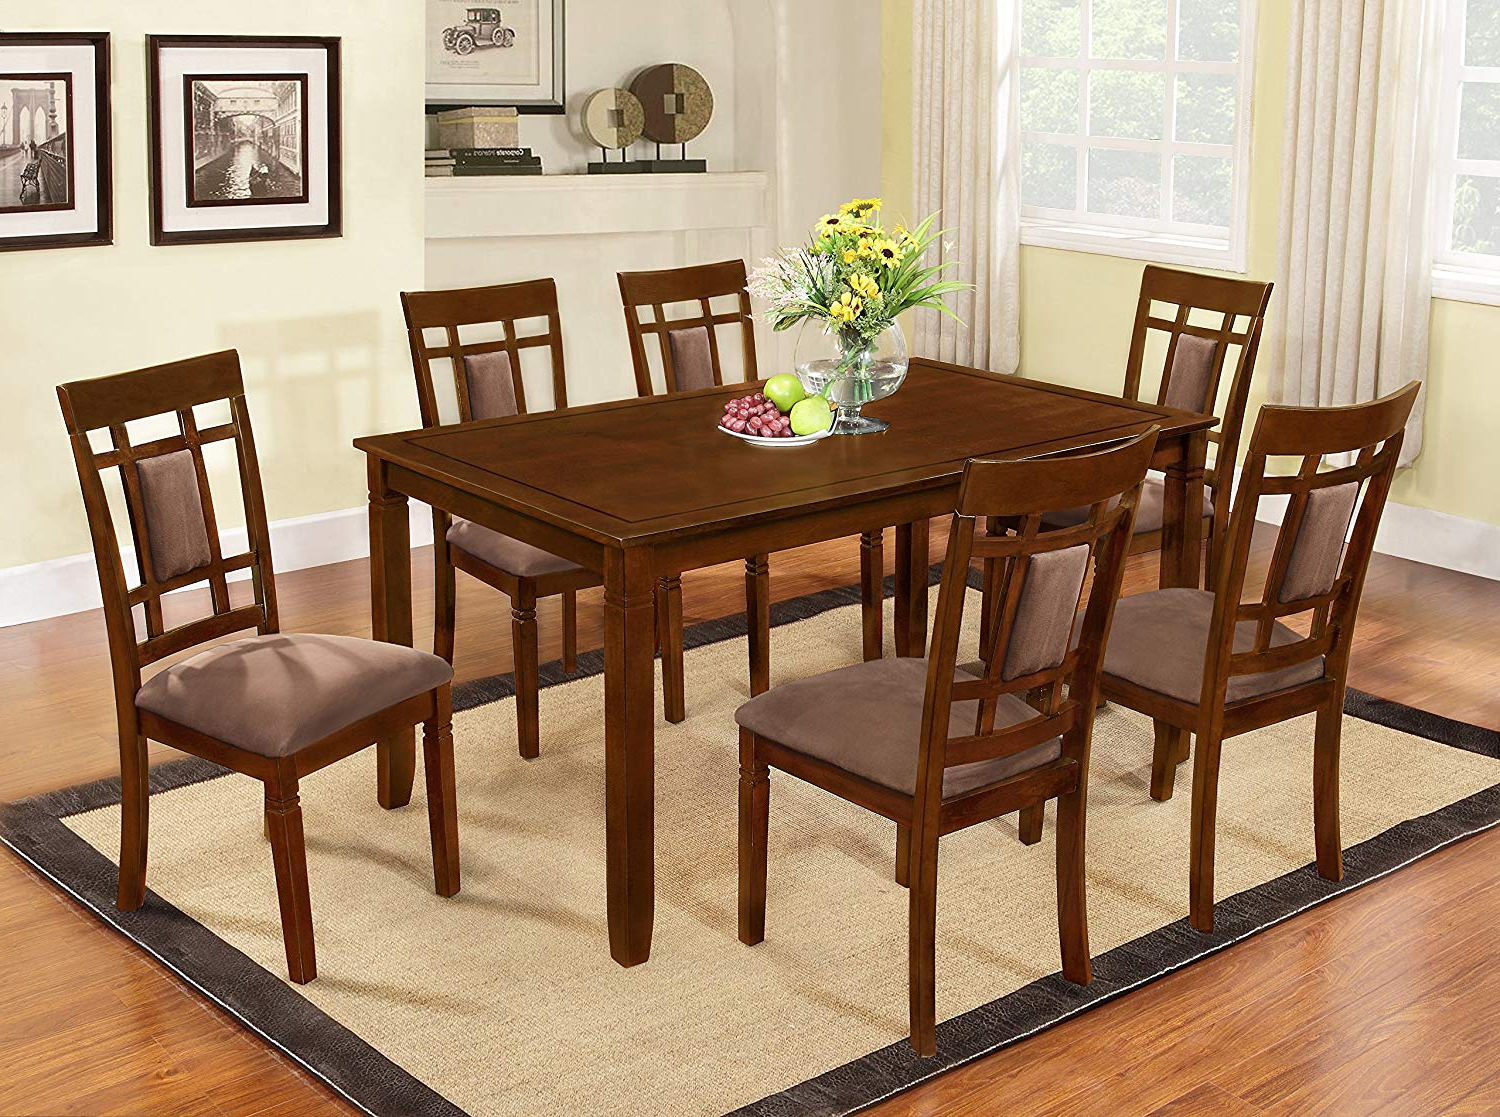 West Hill Family Table 3 Piece Dining Sets With Regard To Fashionable Amazon – The Room Style 7 Piece Cherry Finish Solid Wood Dining (View 8 of 25)